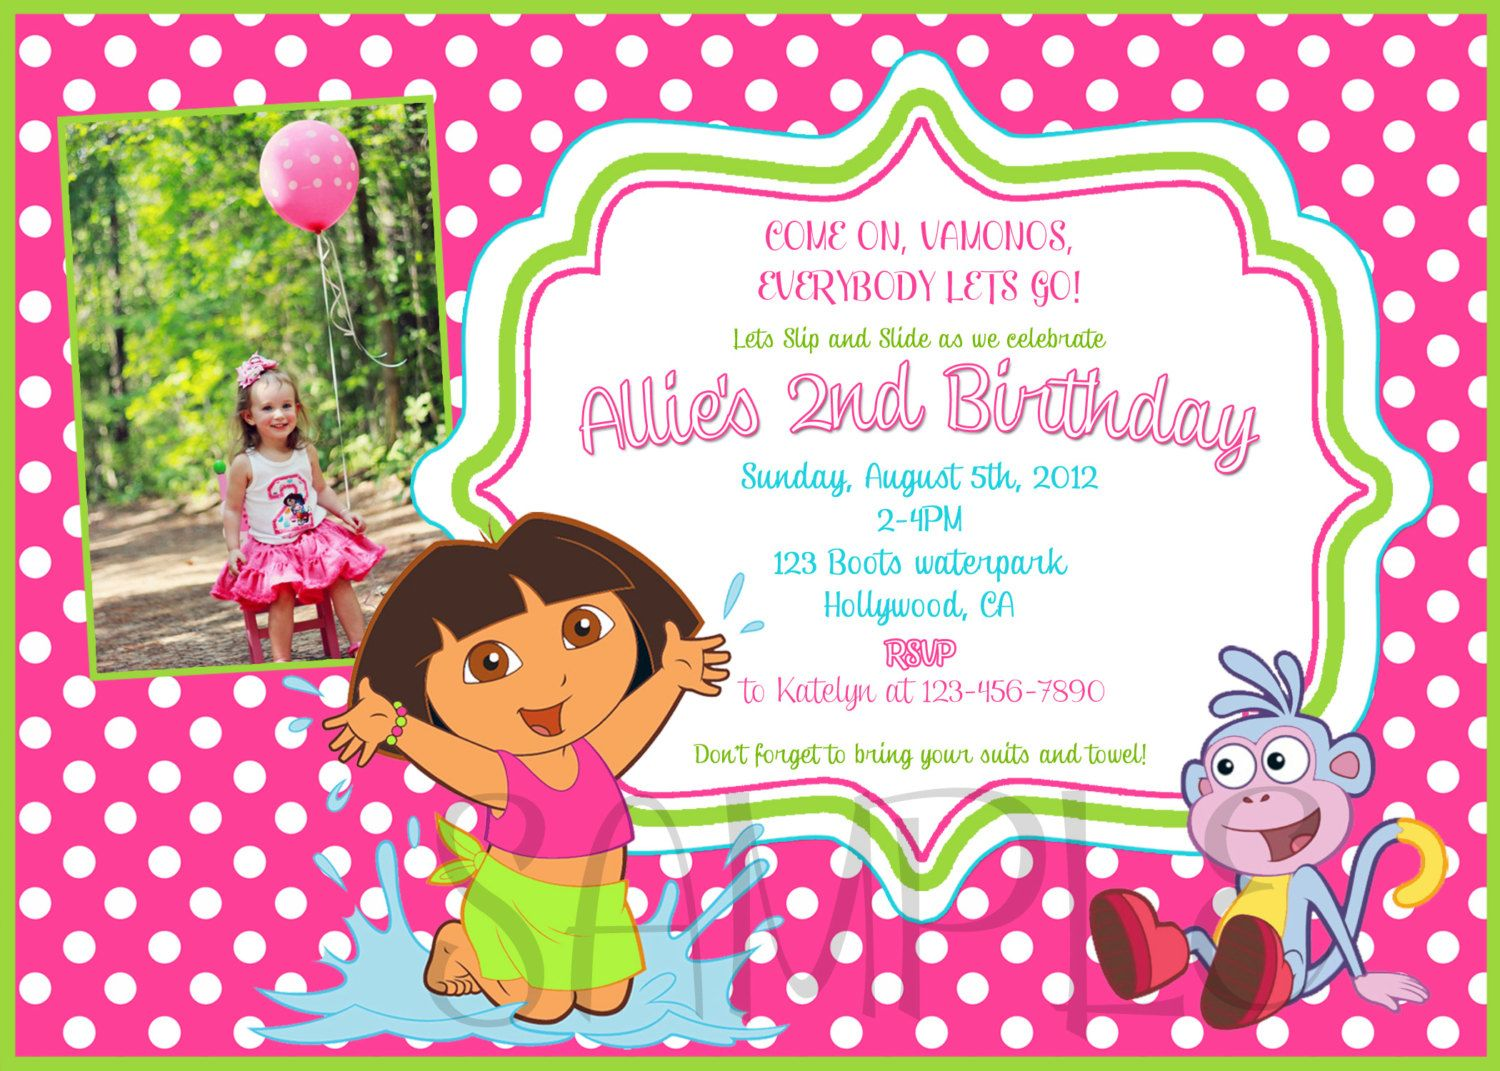 Dora the explorer pool party Invitation. \ | Cake Design Inspiration ...